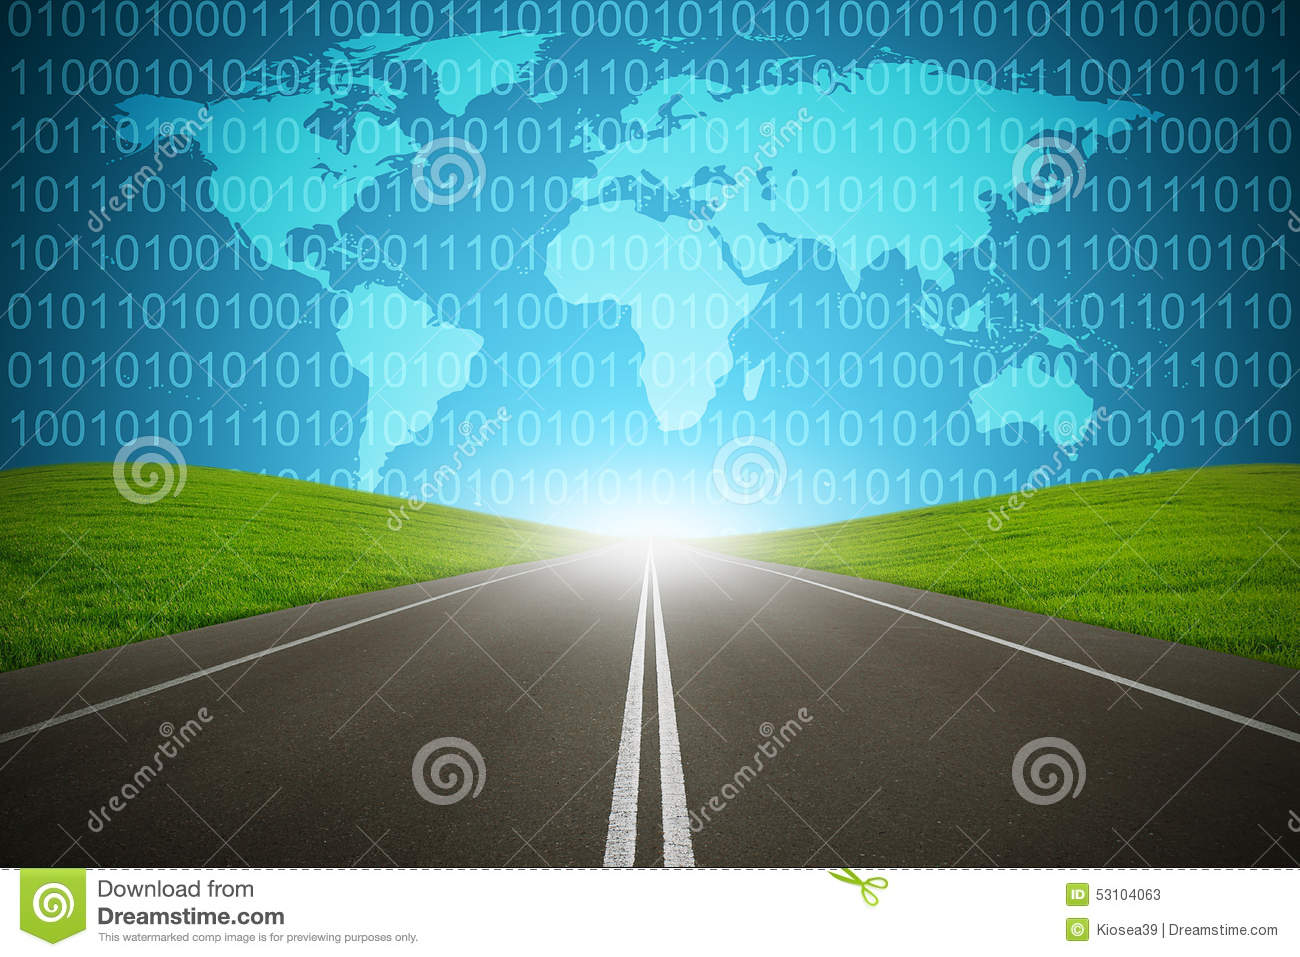 Digital Highway Binary Code Computer Network Internet